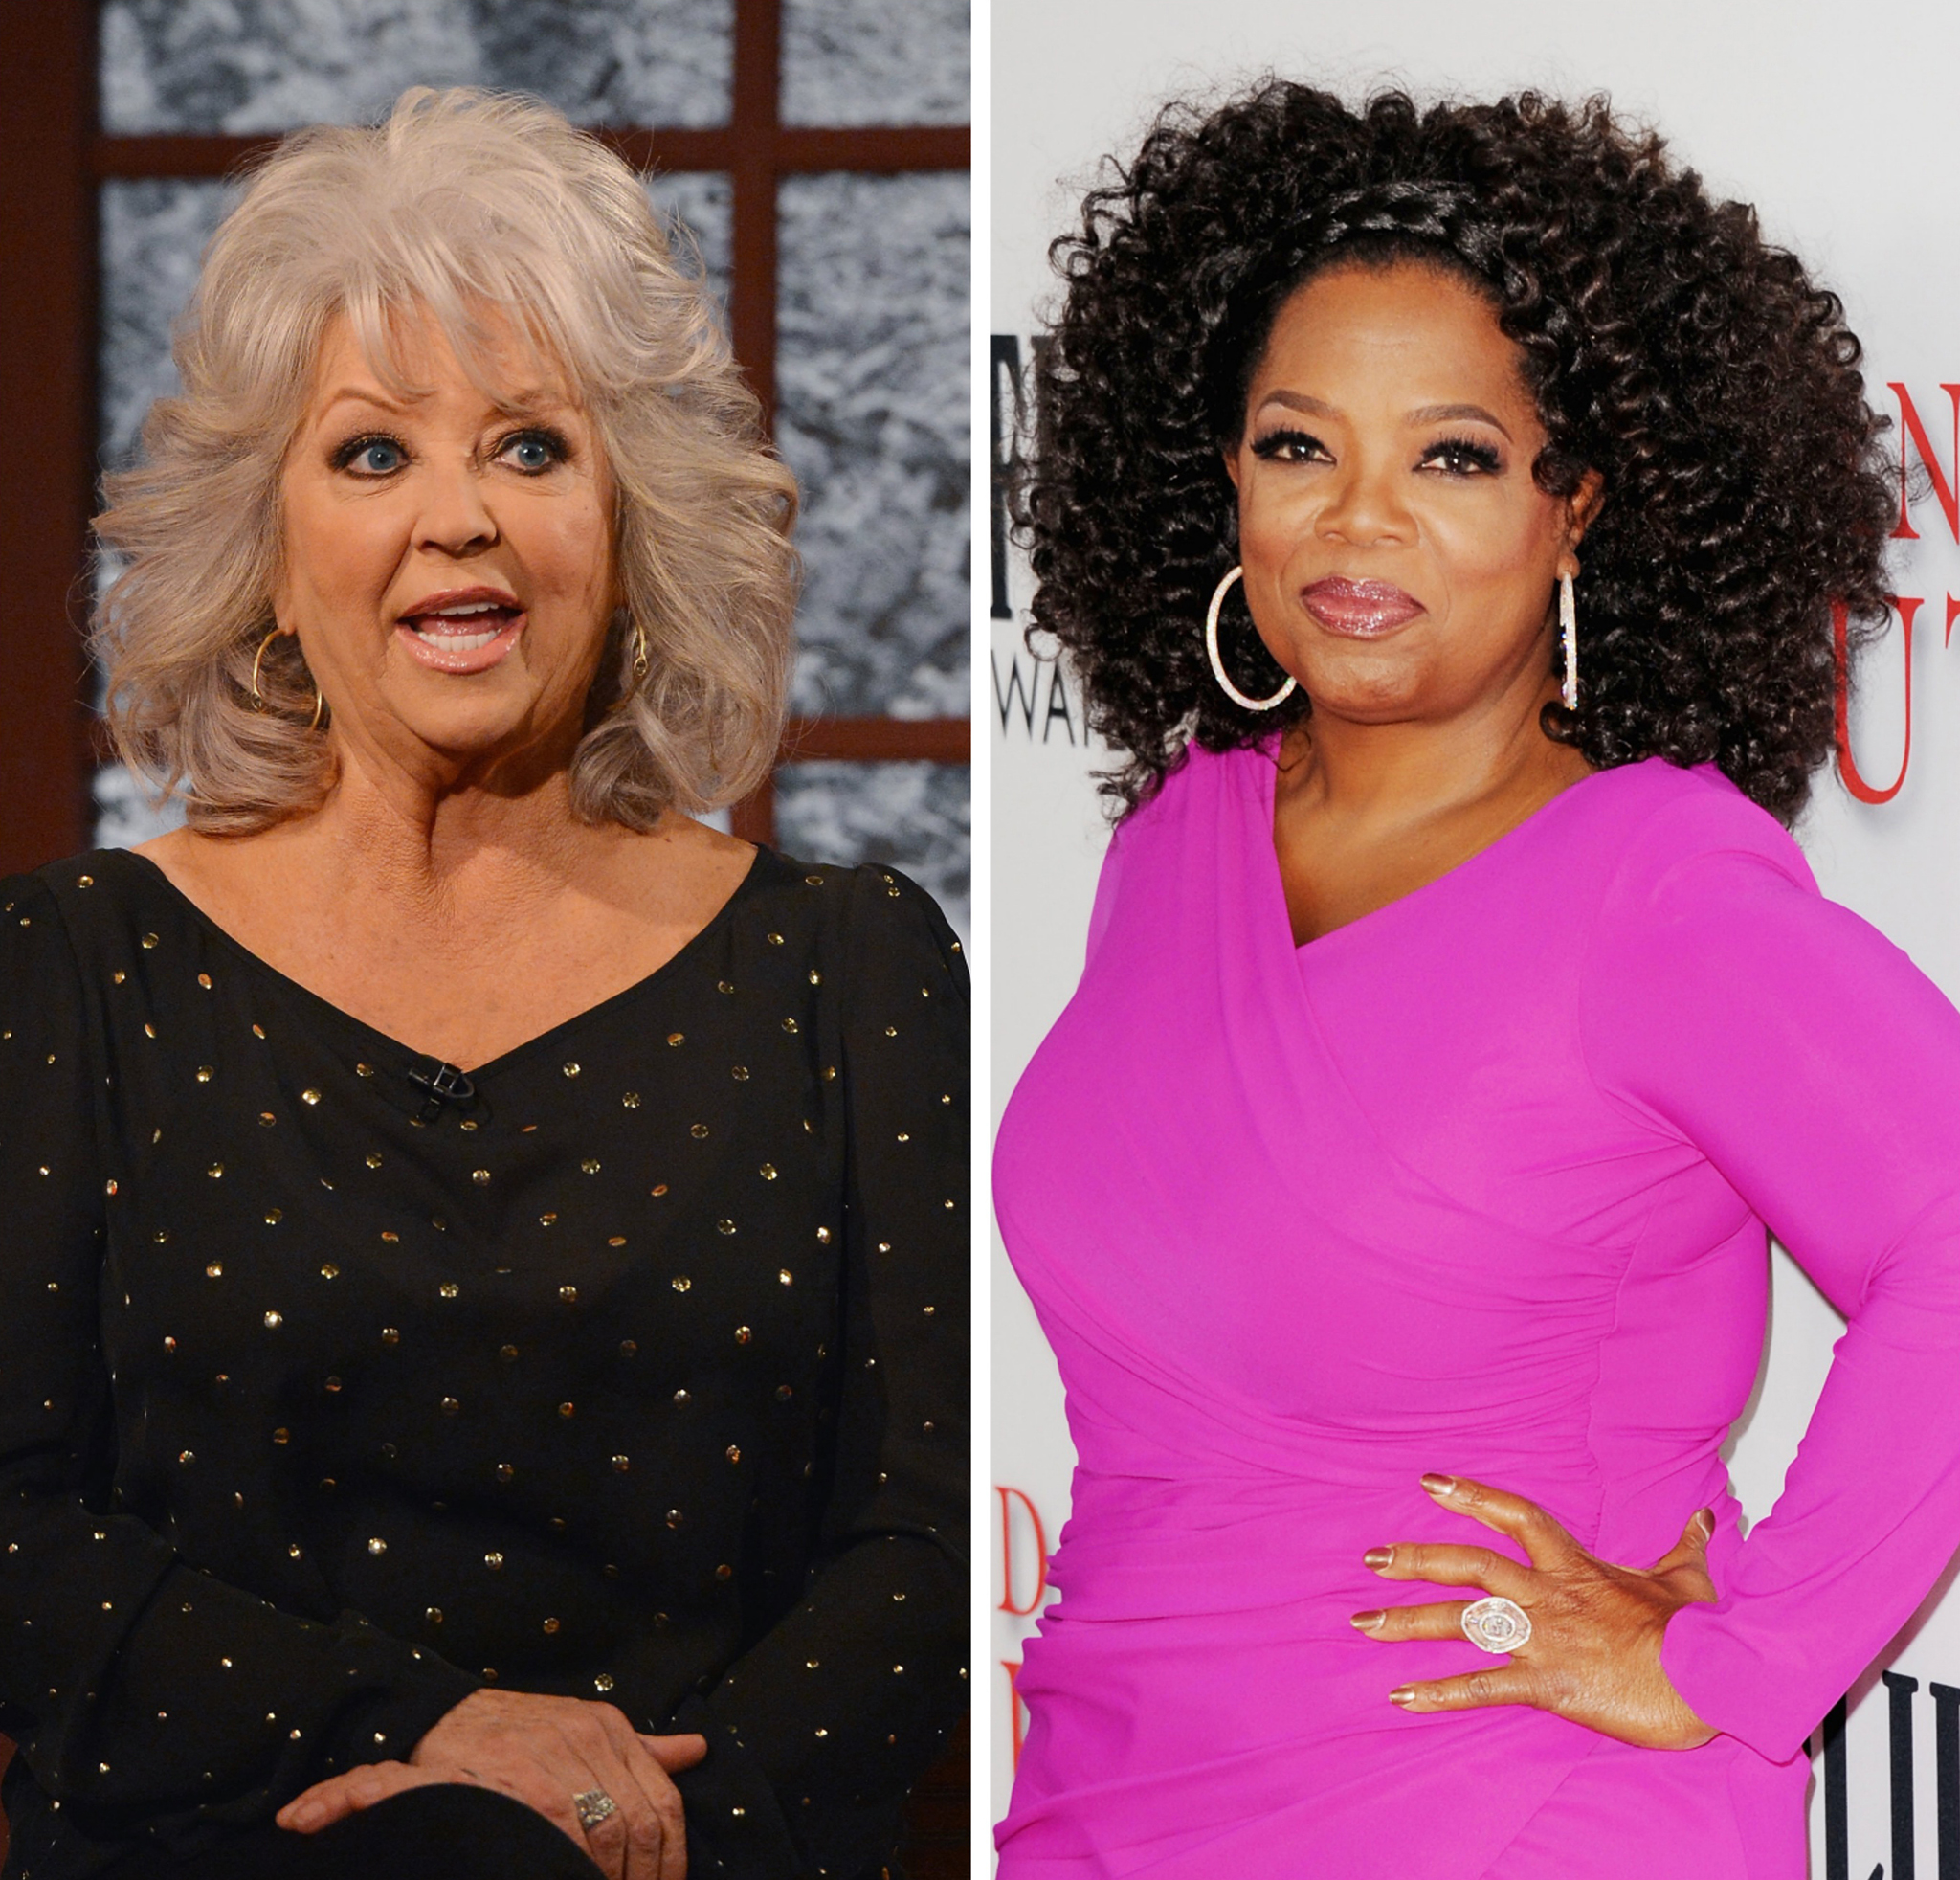 Paula Deen and Oprah Winfrey (Getty Images)